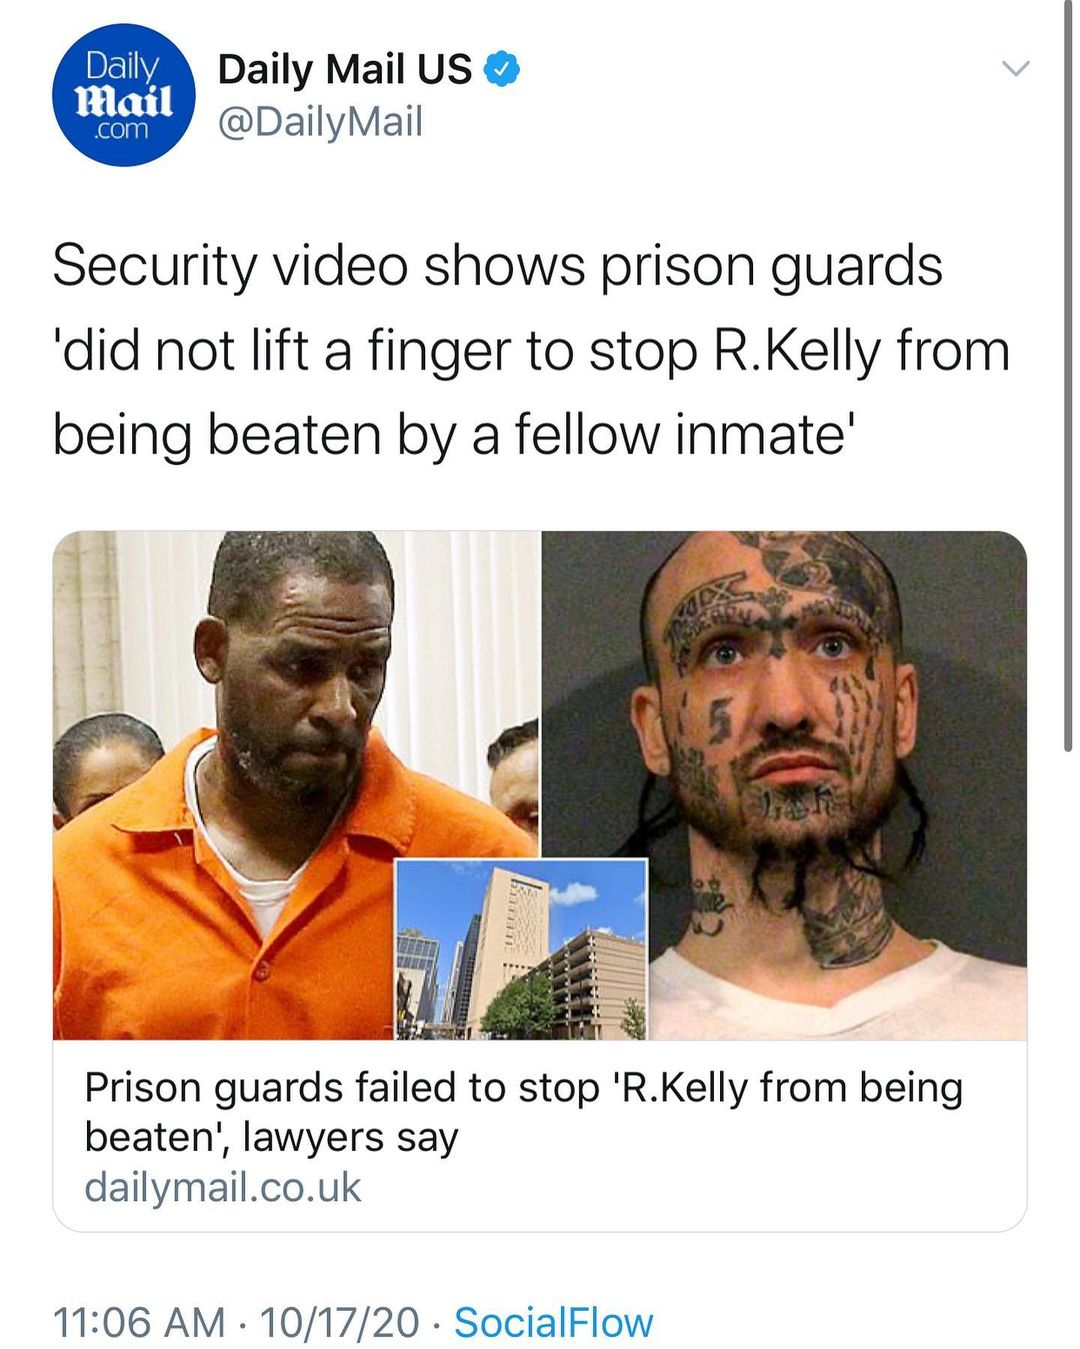 Security Footage Shows Prison Guard's 'did not lift a finger to stop R.Kelly from being beaten by a fellow inmate'